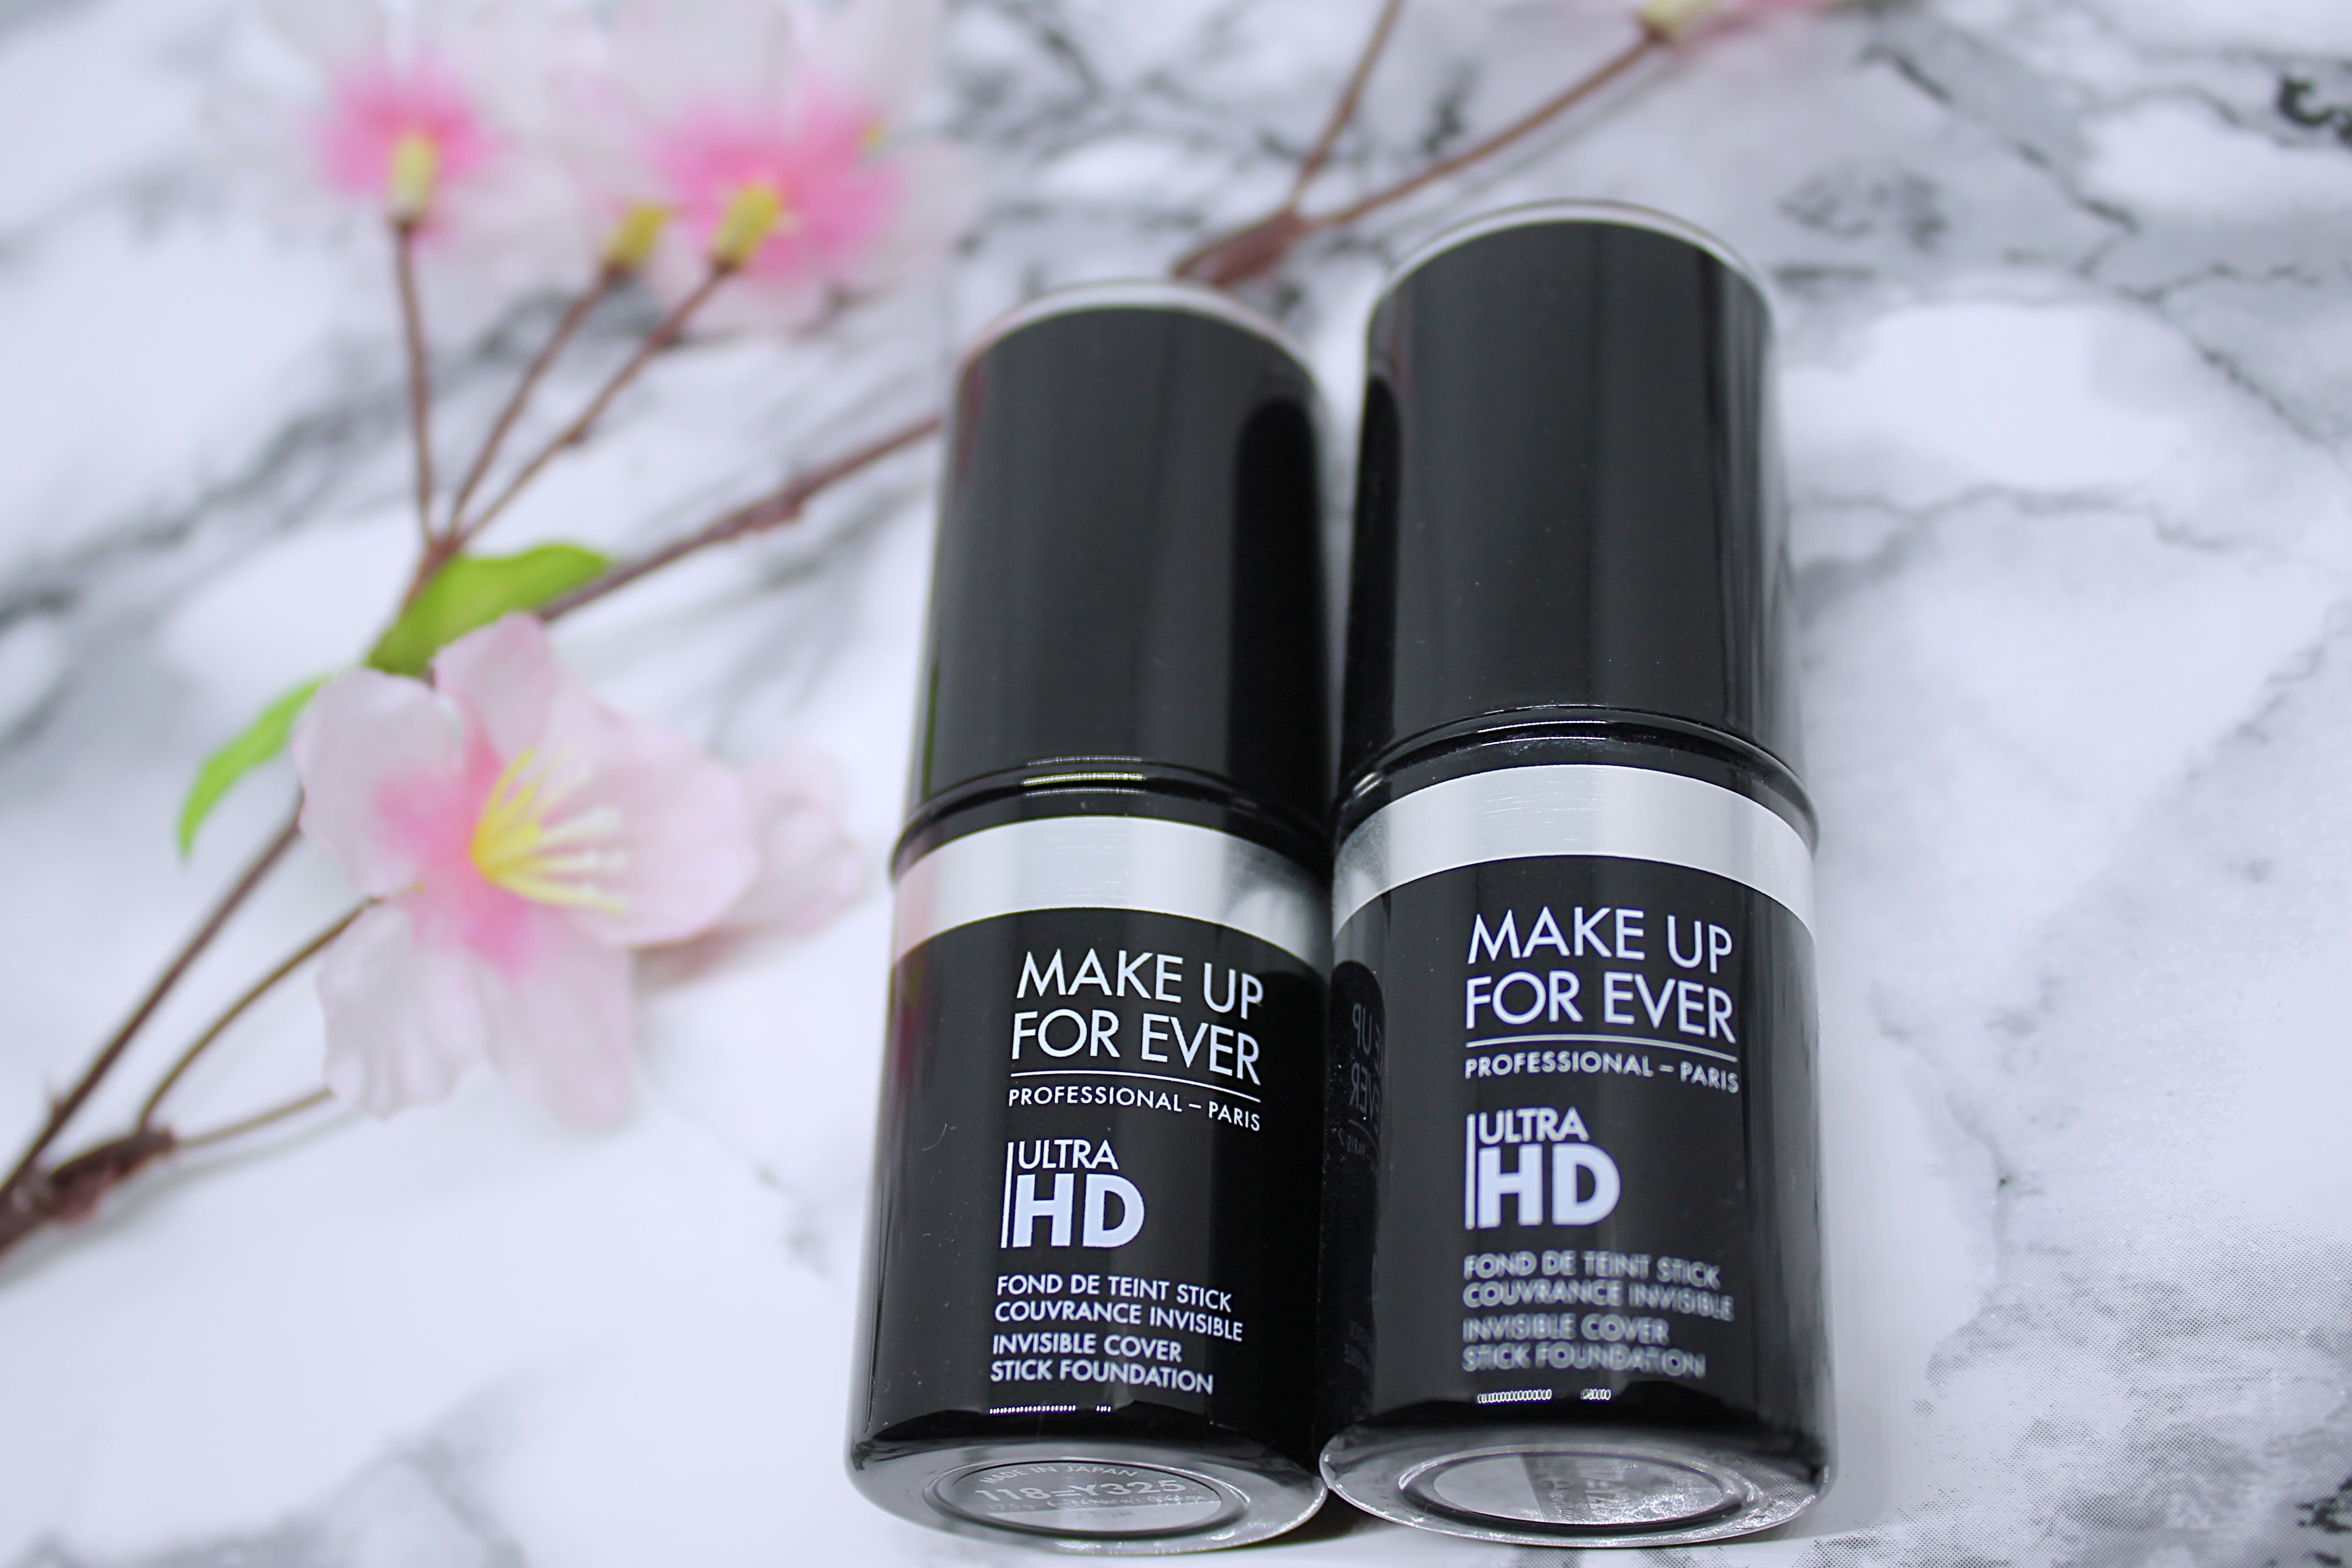 Review on the Make Up For Ever Ultra HD Invisible Cover